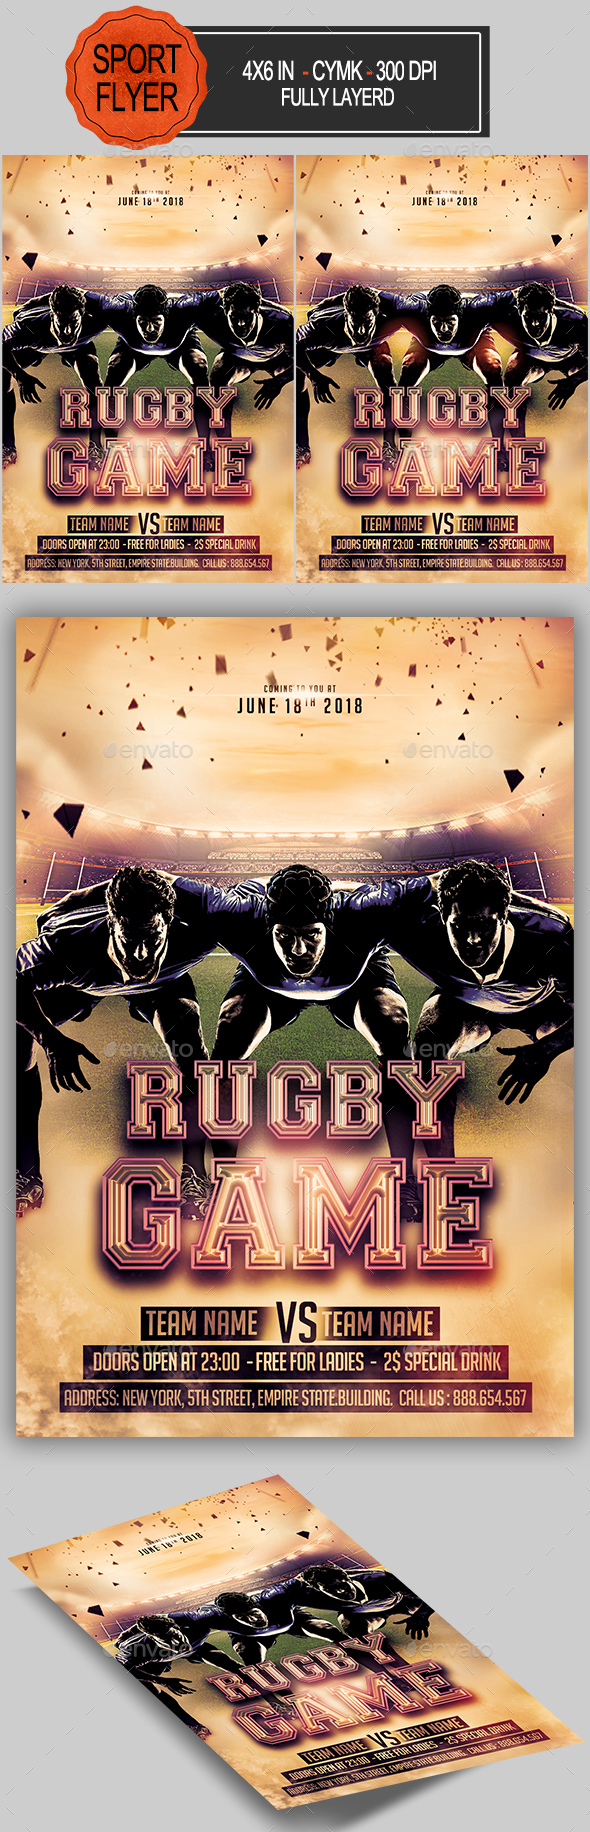 Rugby Game Flyer - Sports Events